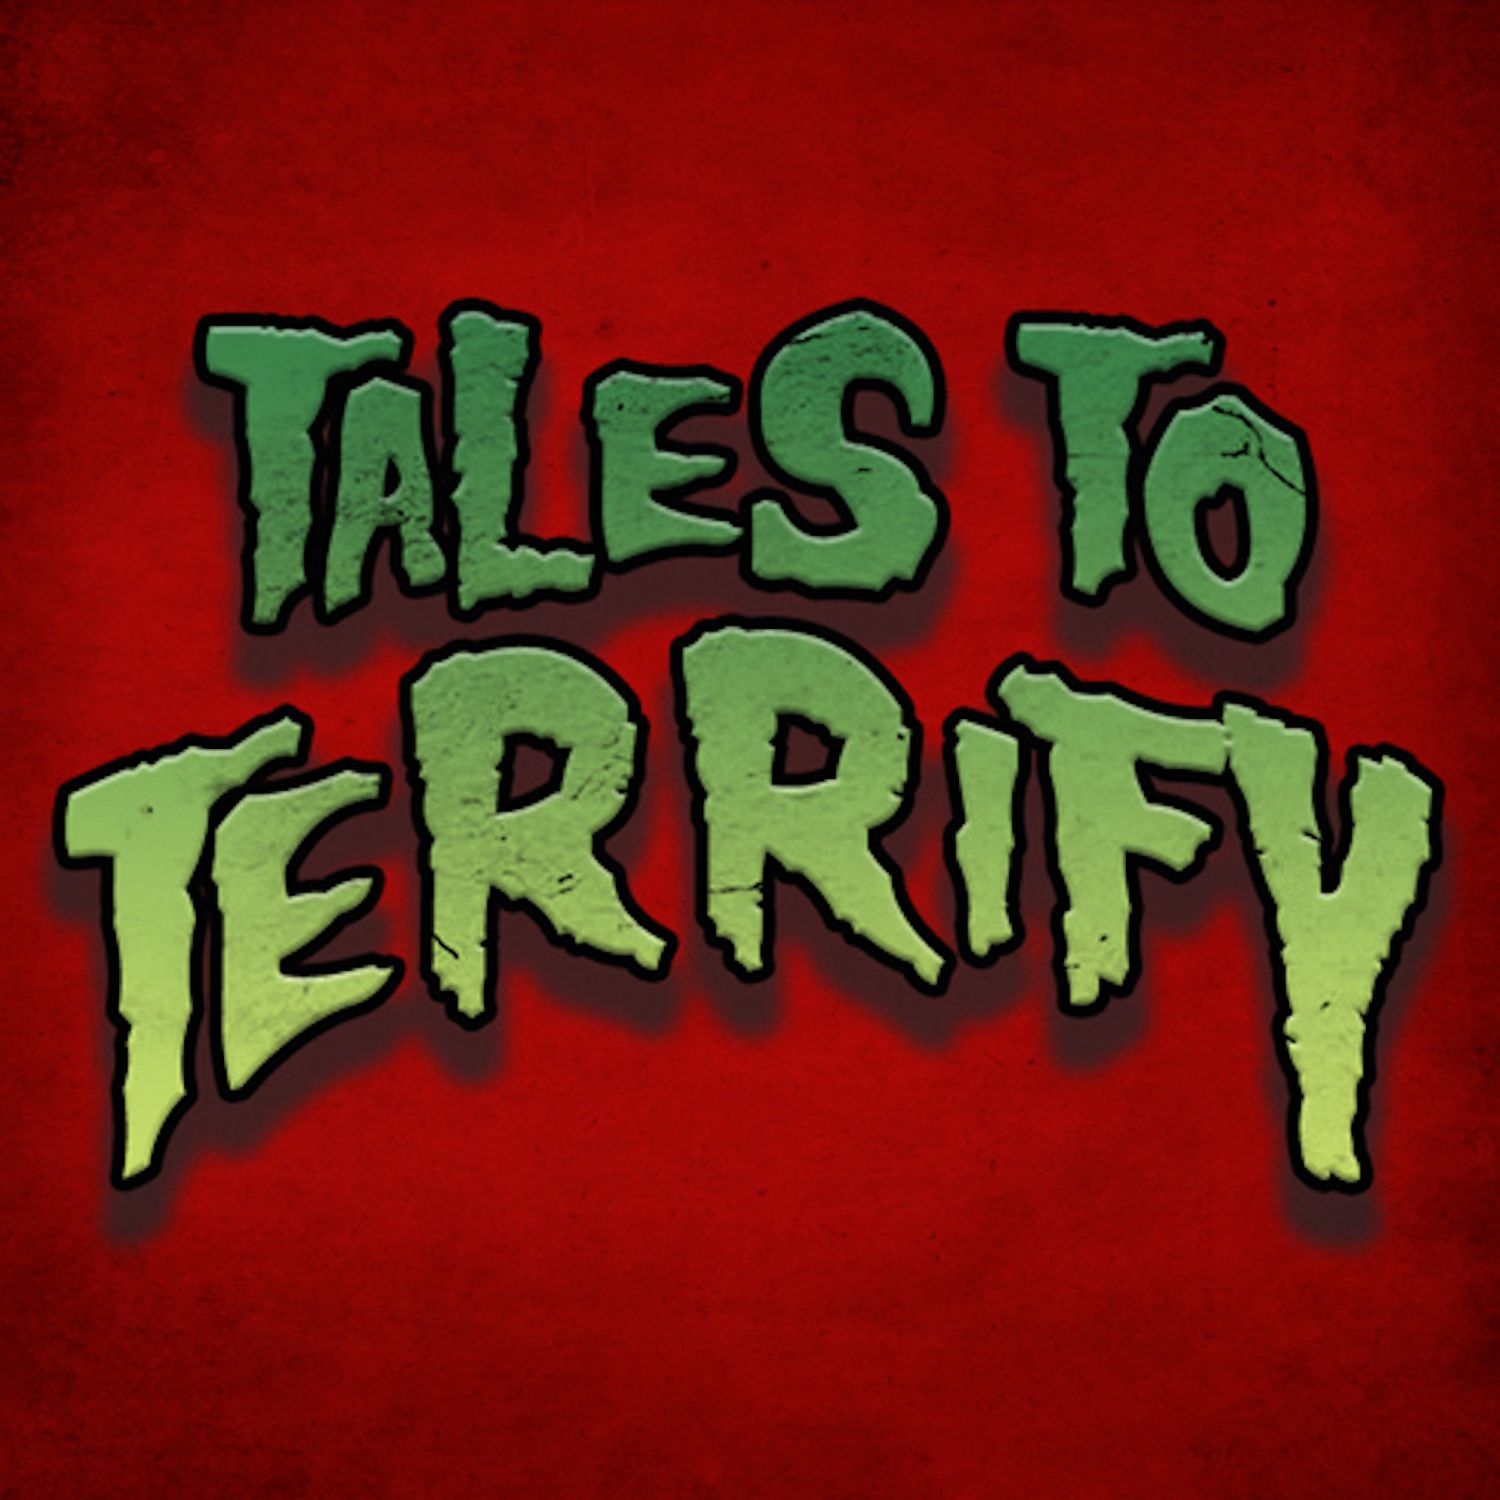 Tales to Terrify 337 C.W. Blackwell